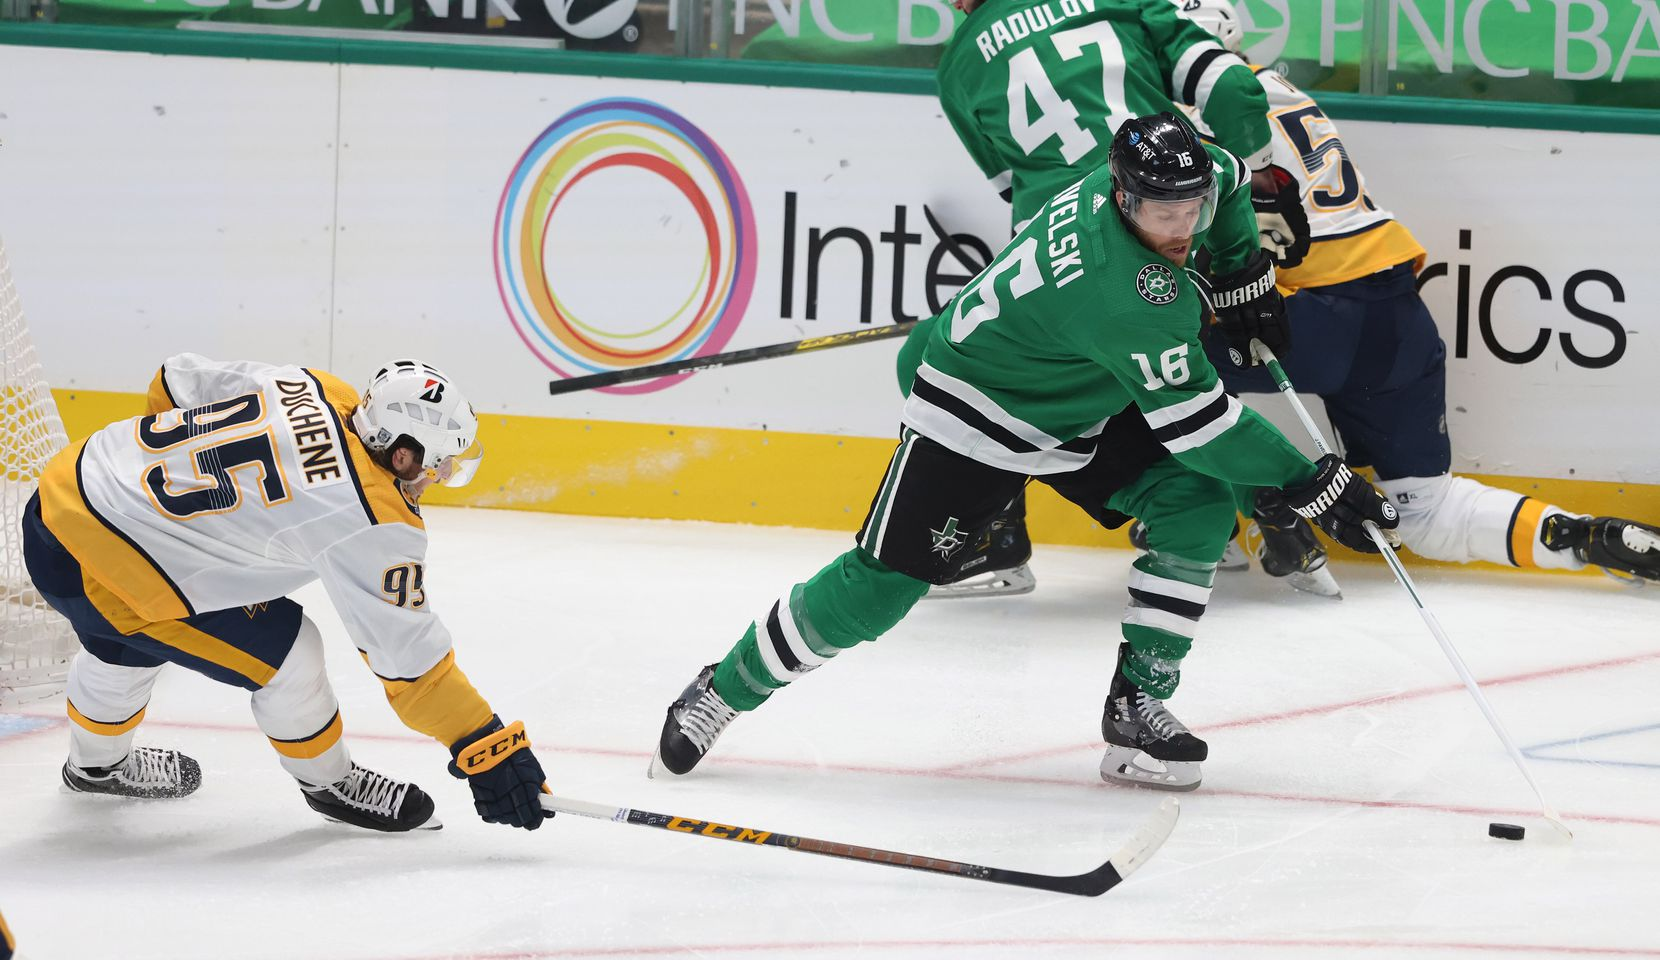 Dallas Stars center Joe Pavelski (16) attempts to get around the reach of Nashville Predators center Matt Duchene (95) during the first period of play in the Stars home opener at American Airlines Center on Friday, January 22, 2021in Dallas. (Vernon Bryant/The Dallas Morning News)